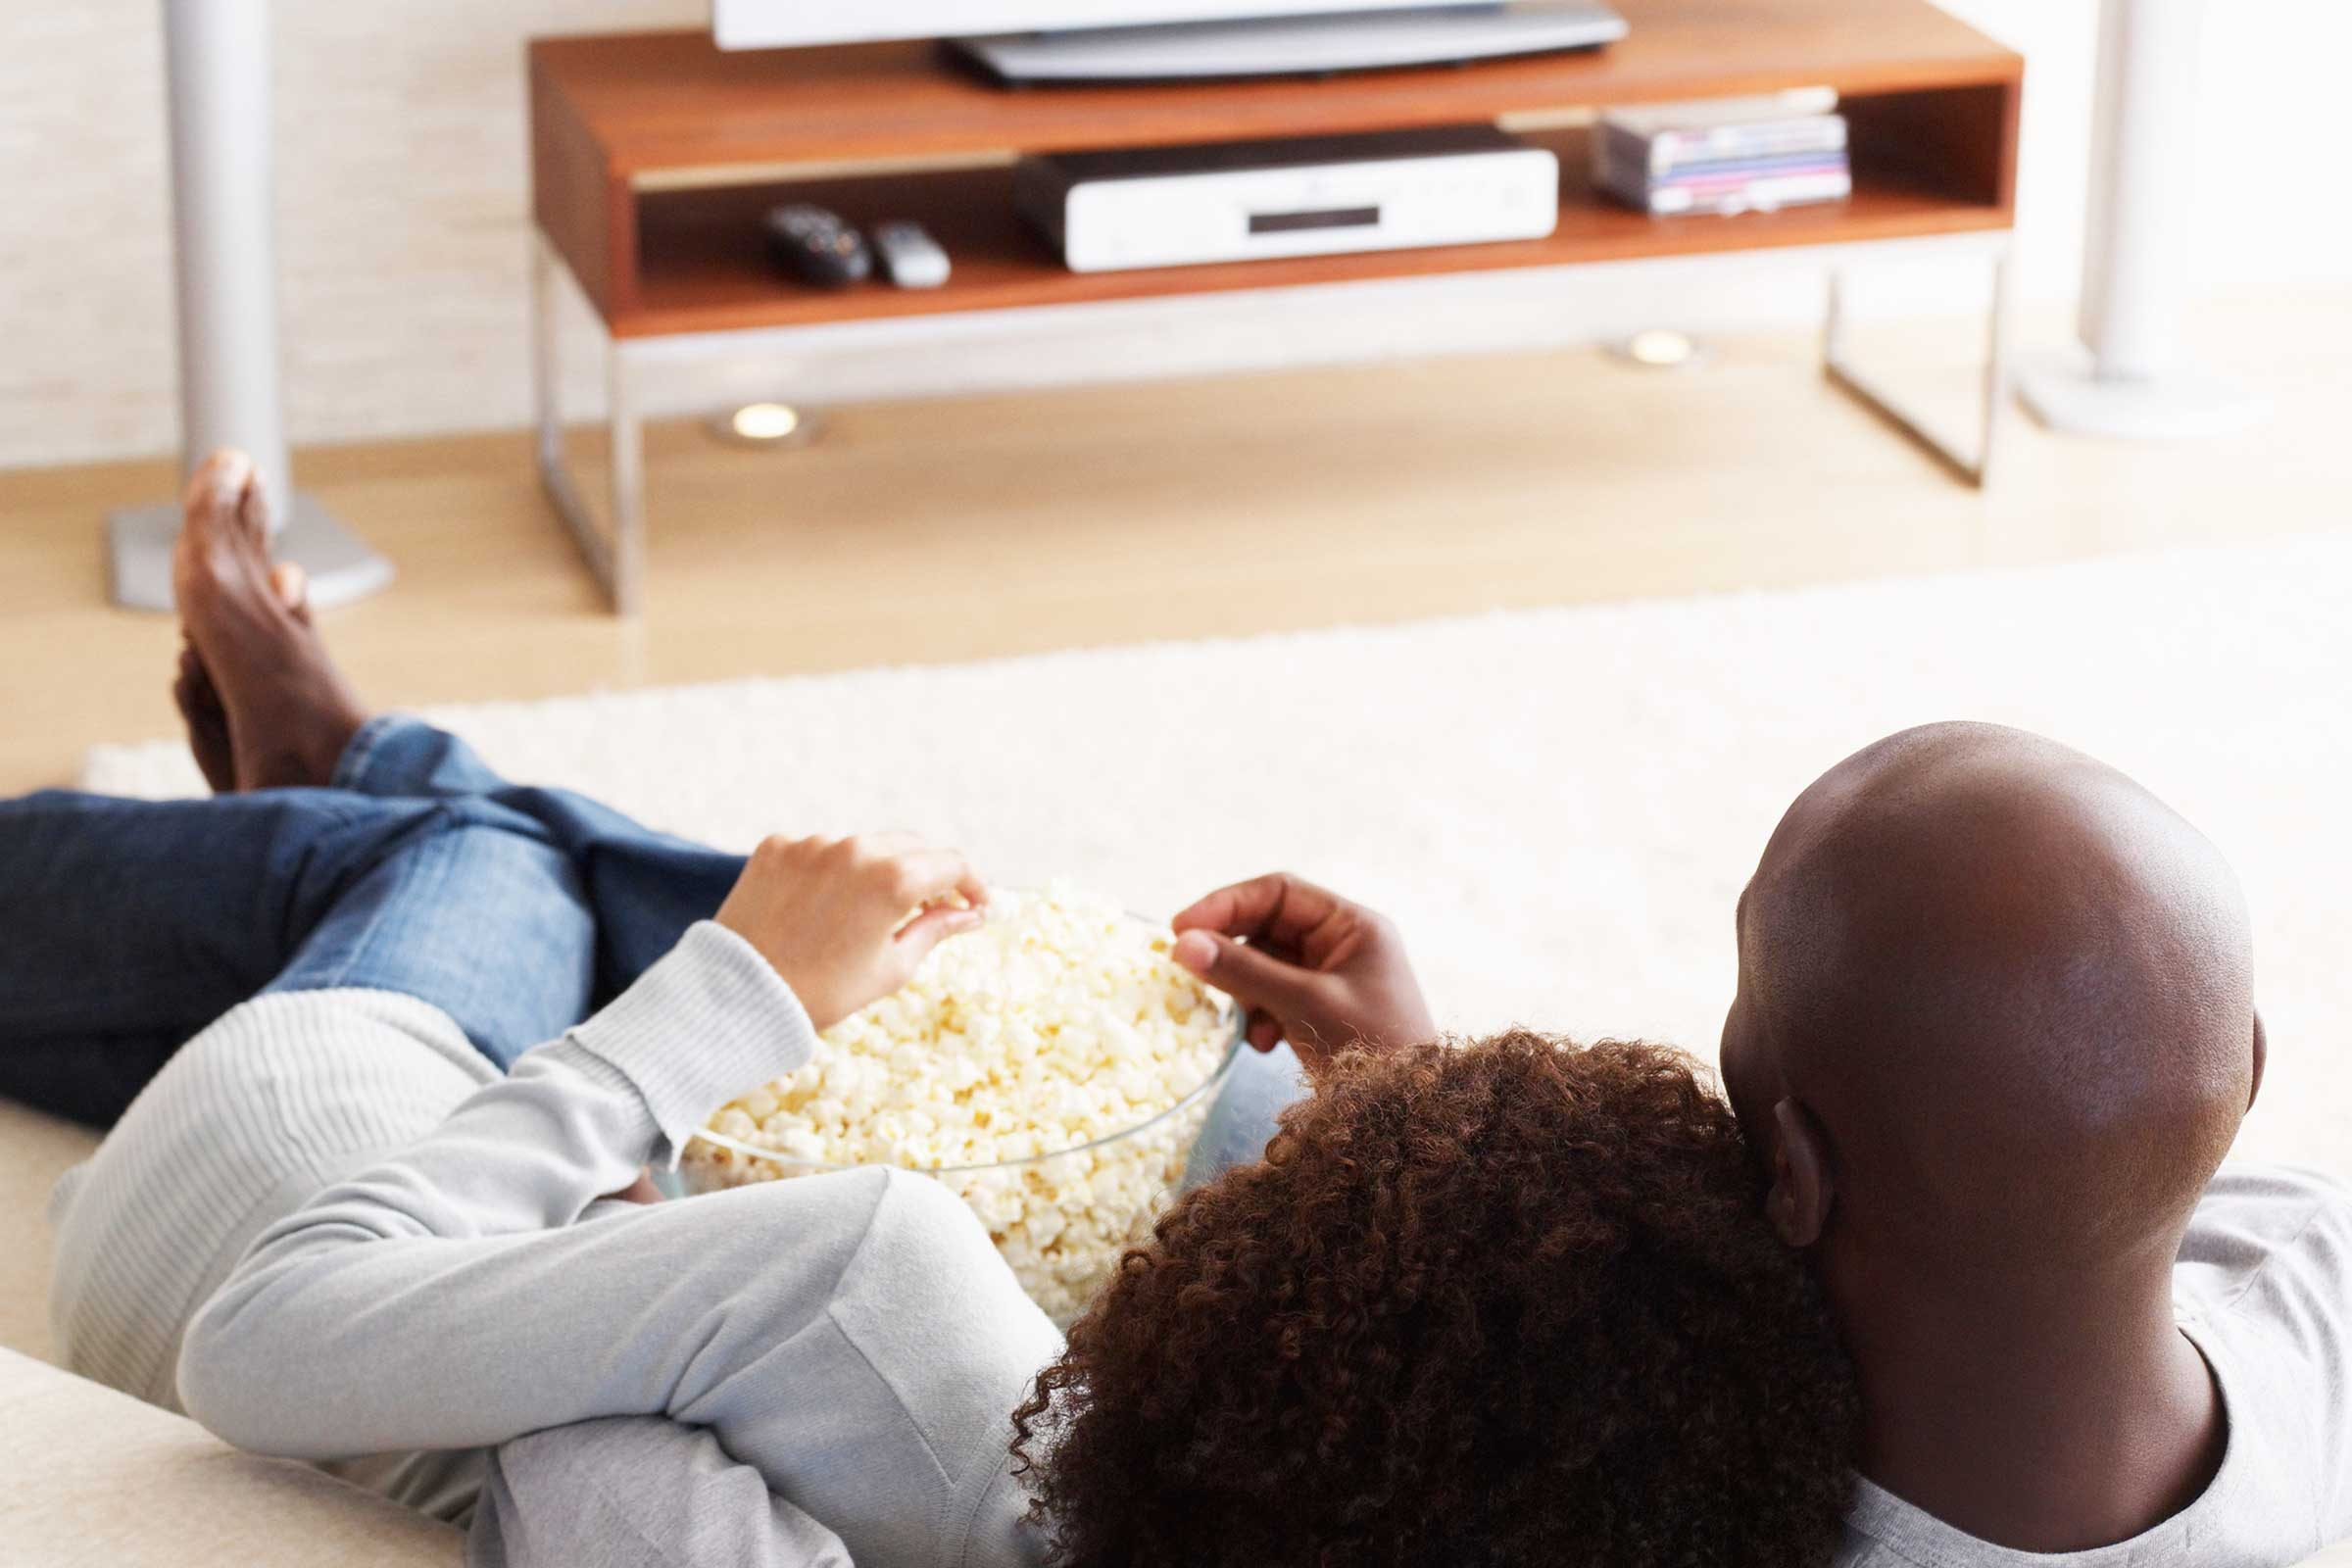 Man and woman curled up on the couch together eating from a bowl of popcorn.